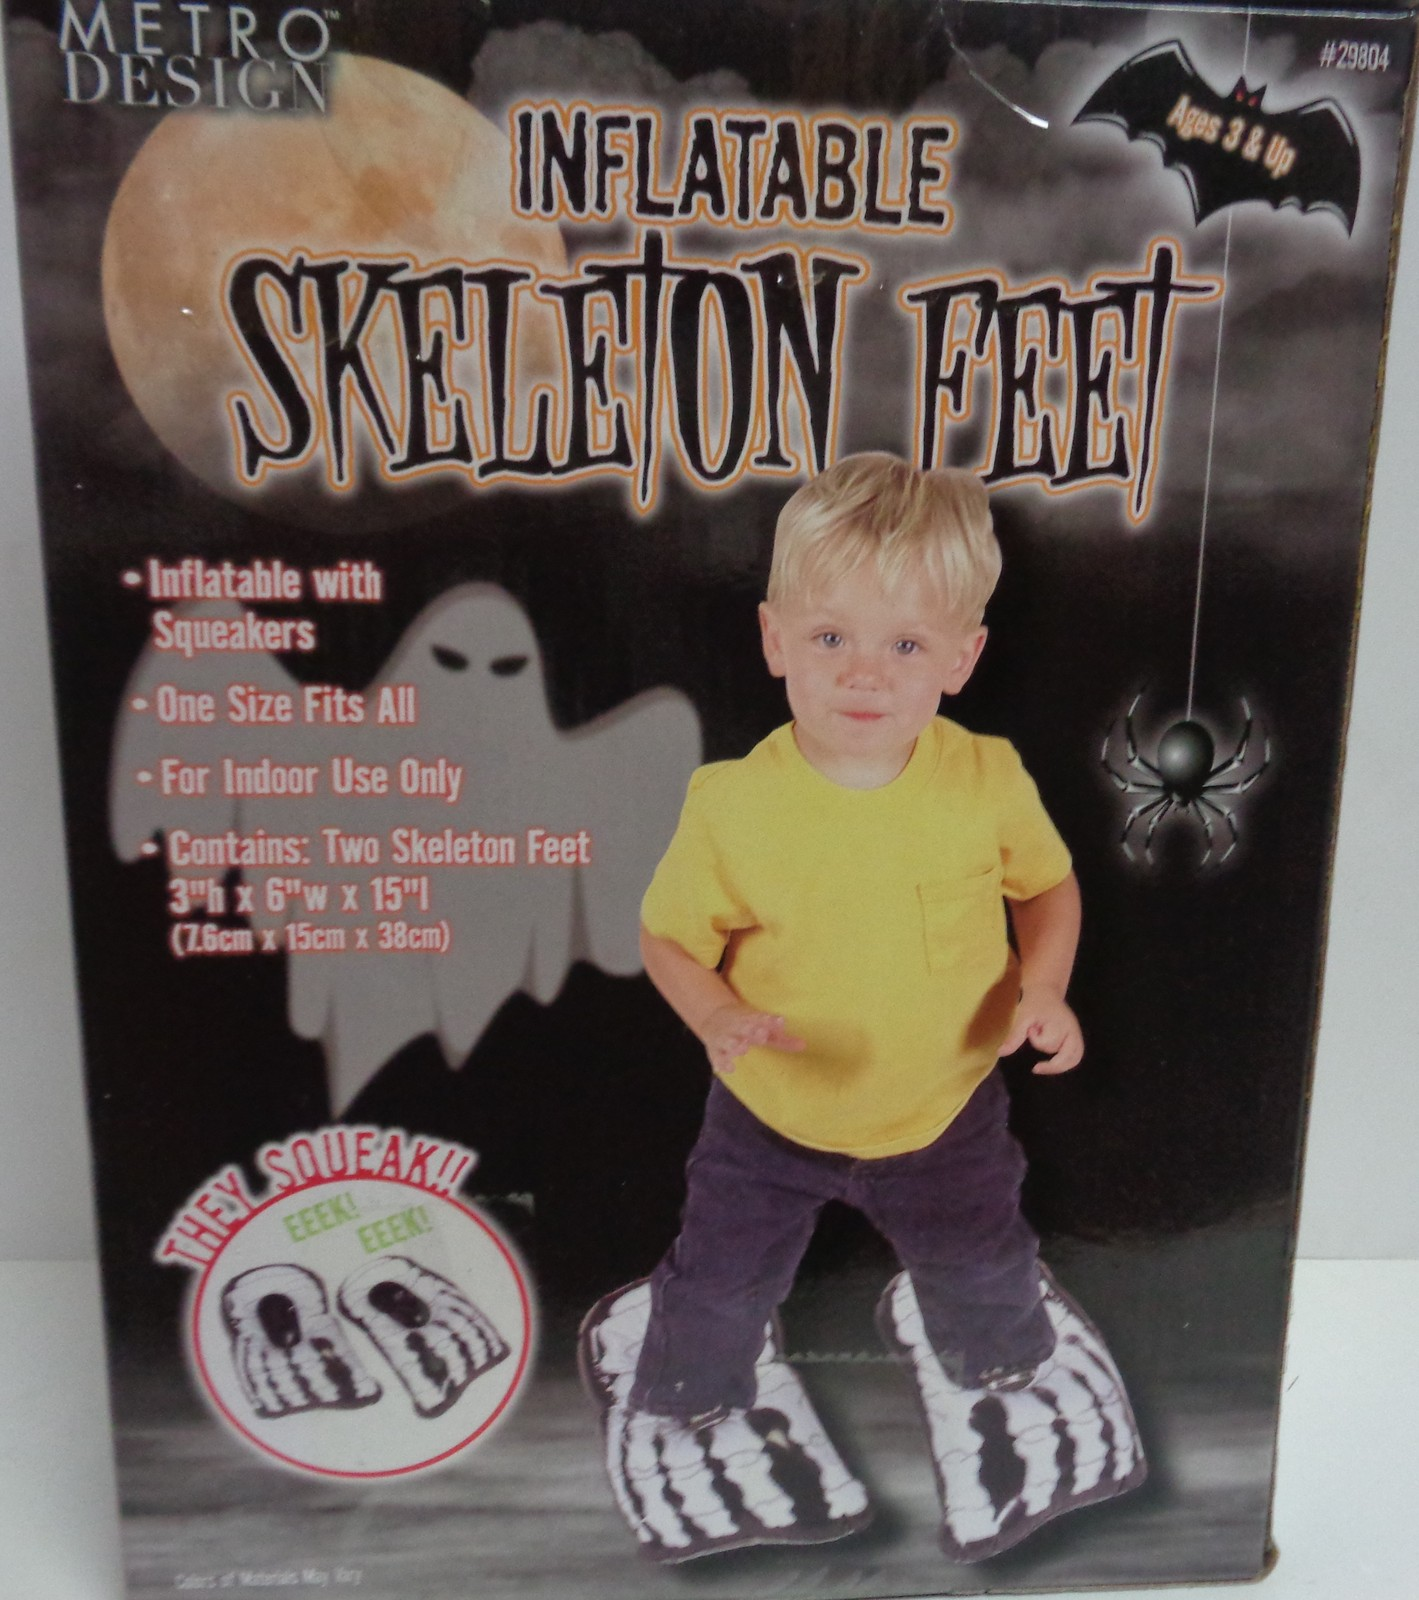 "Inflatable Skeleton Feet With Squeakers Costume NIB 3""H x 6"" W x 15"" L"